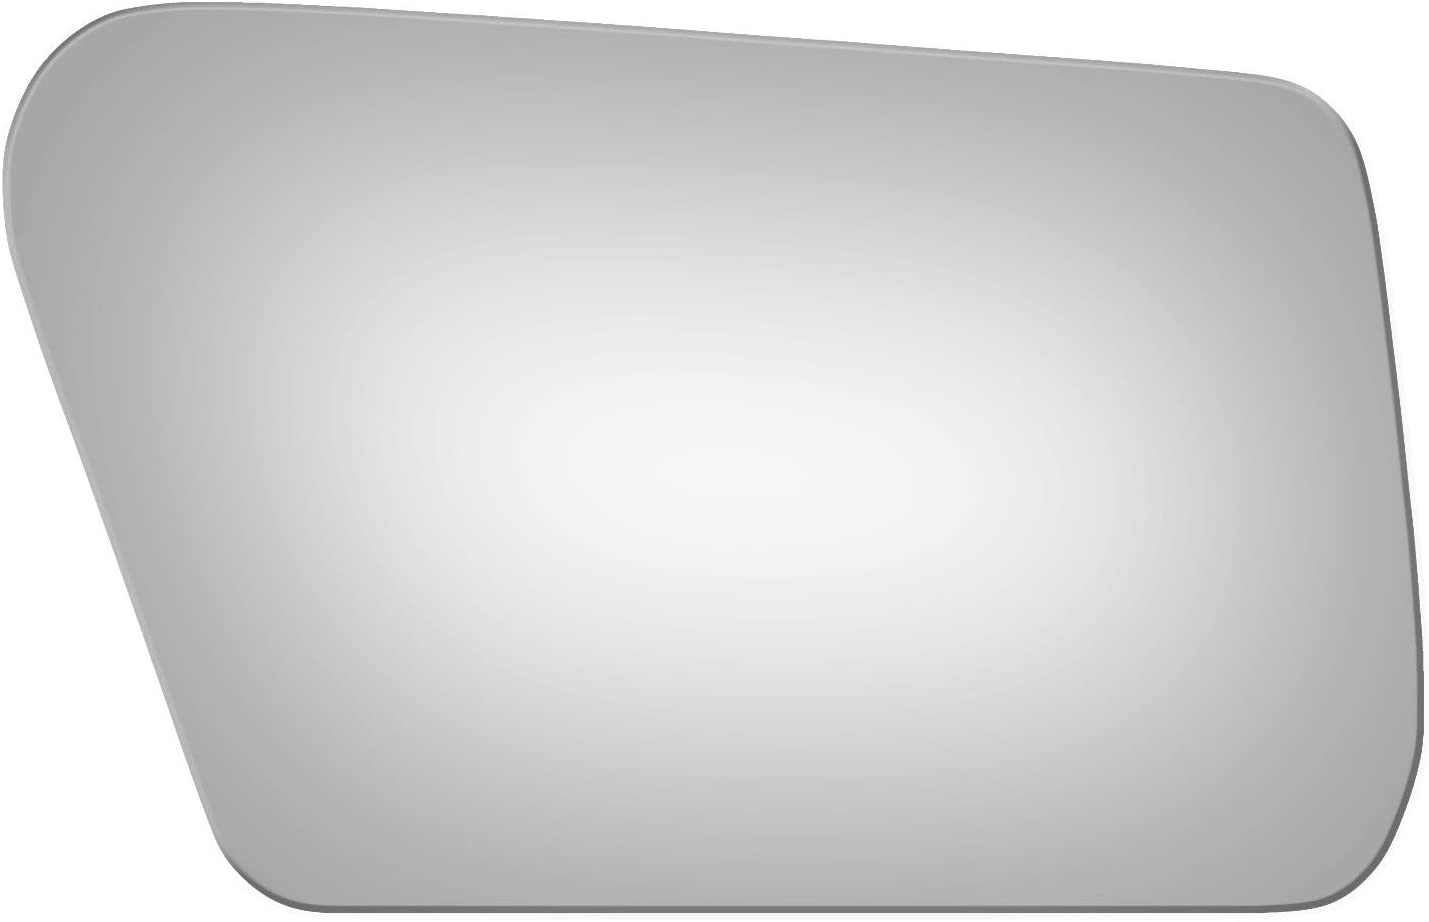 Burco 5519 Convex Passenger Side Power Replacement Mirror Glass for 2010-2014 BMW X3